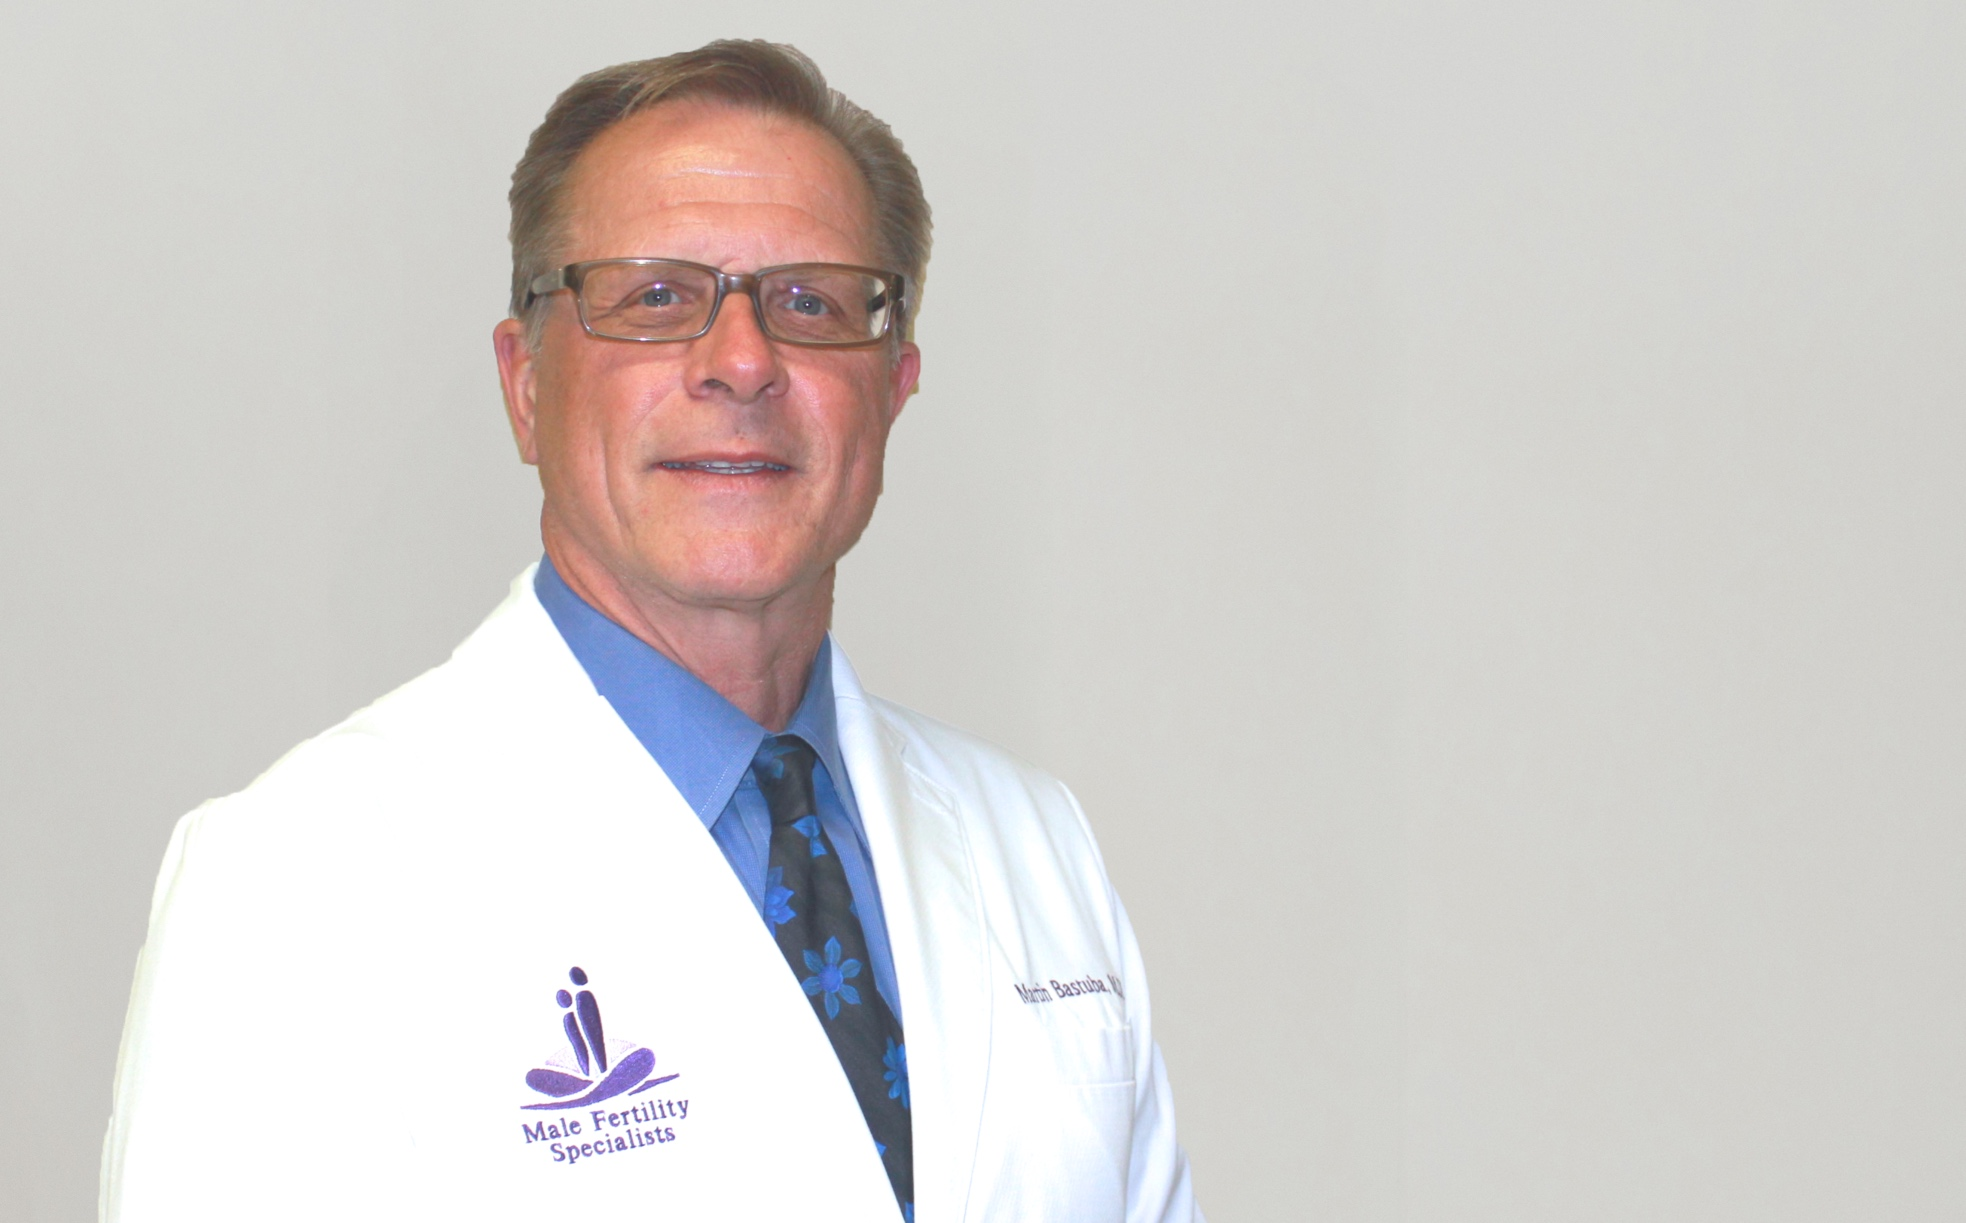 Dr. Bastuba, Director of Male Fertility Services